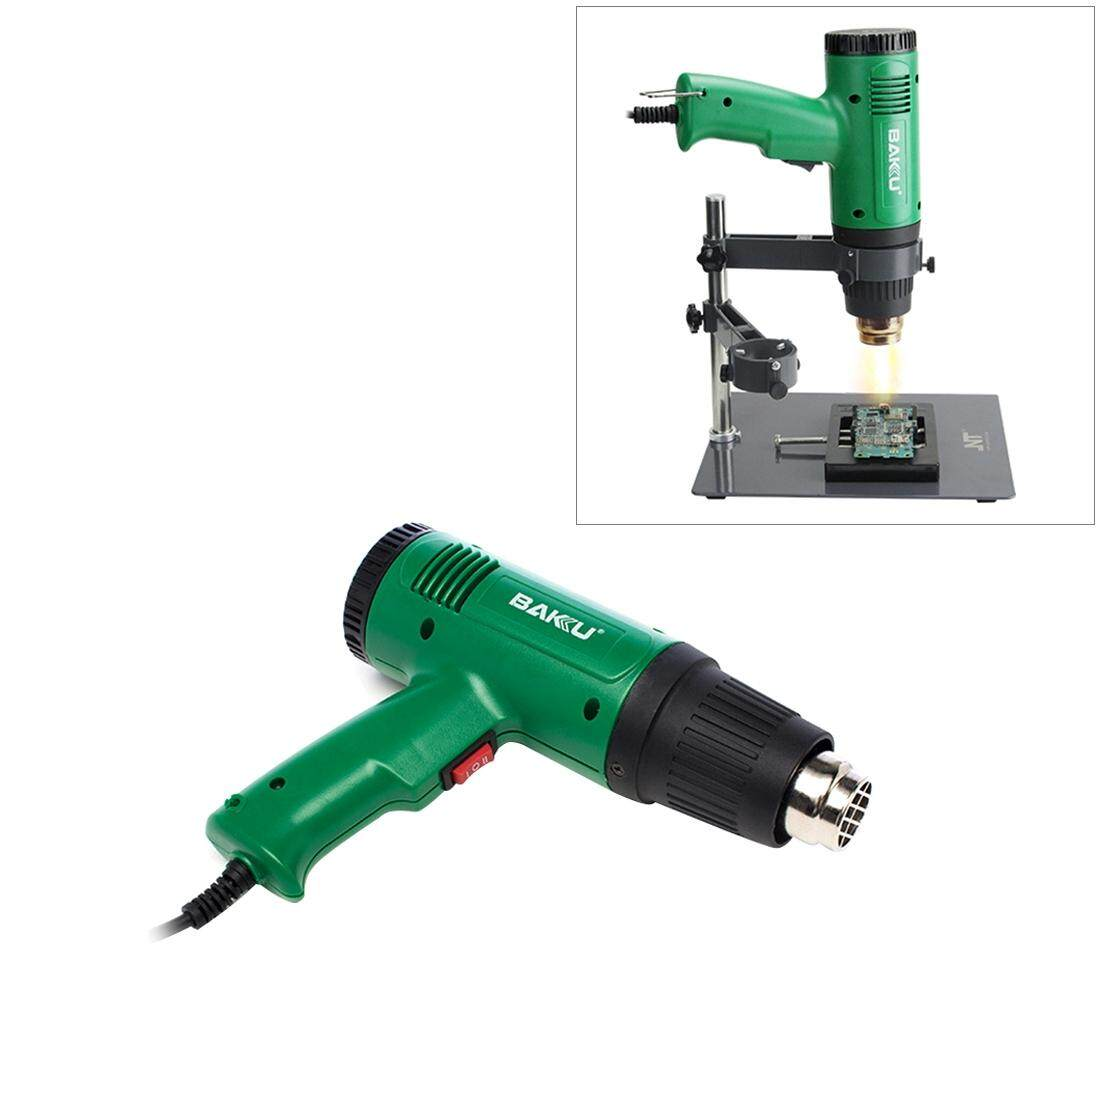 BAKU BK-8033 1600W 50Hz Hot Air Gun, AC 220V, EU Plug